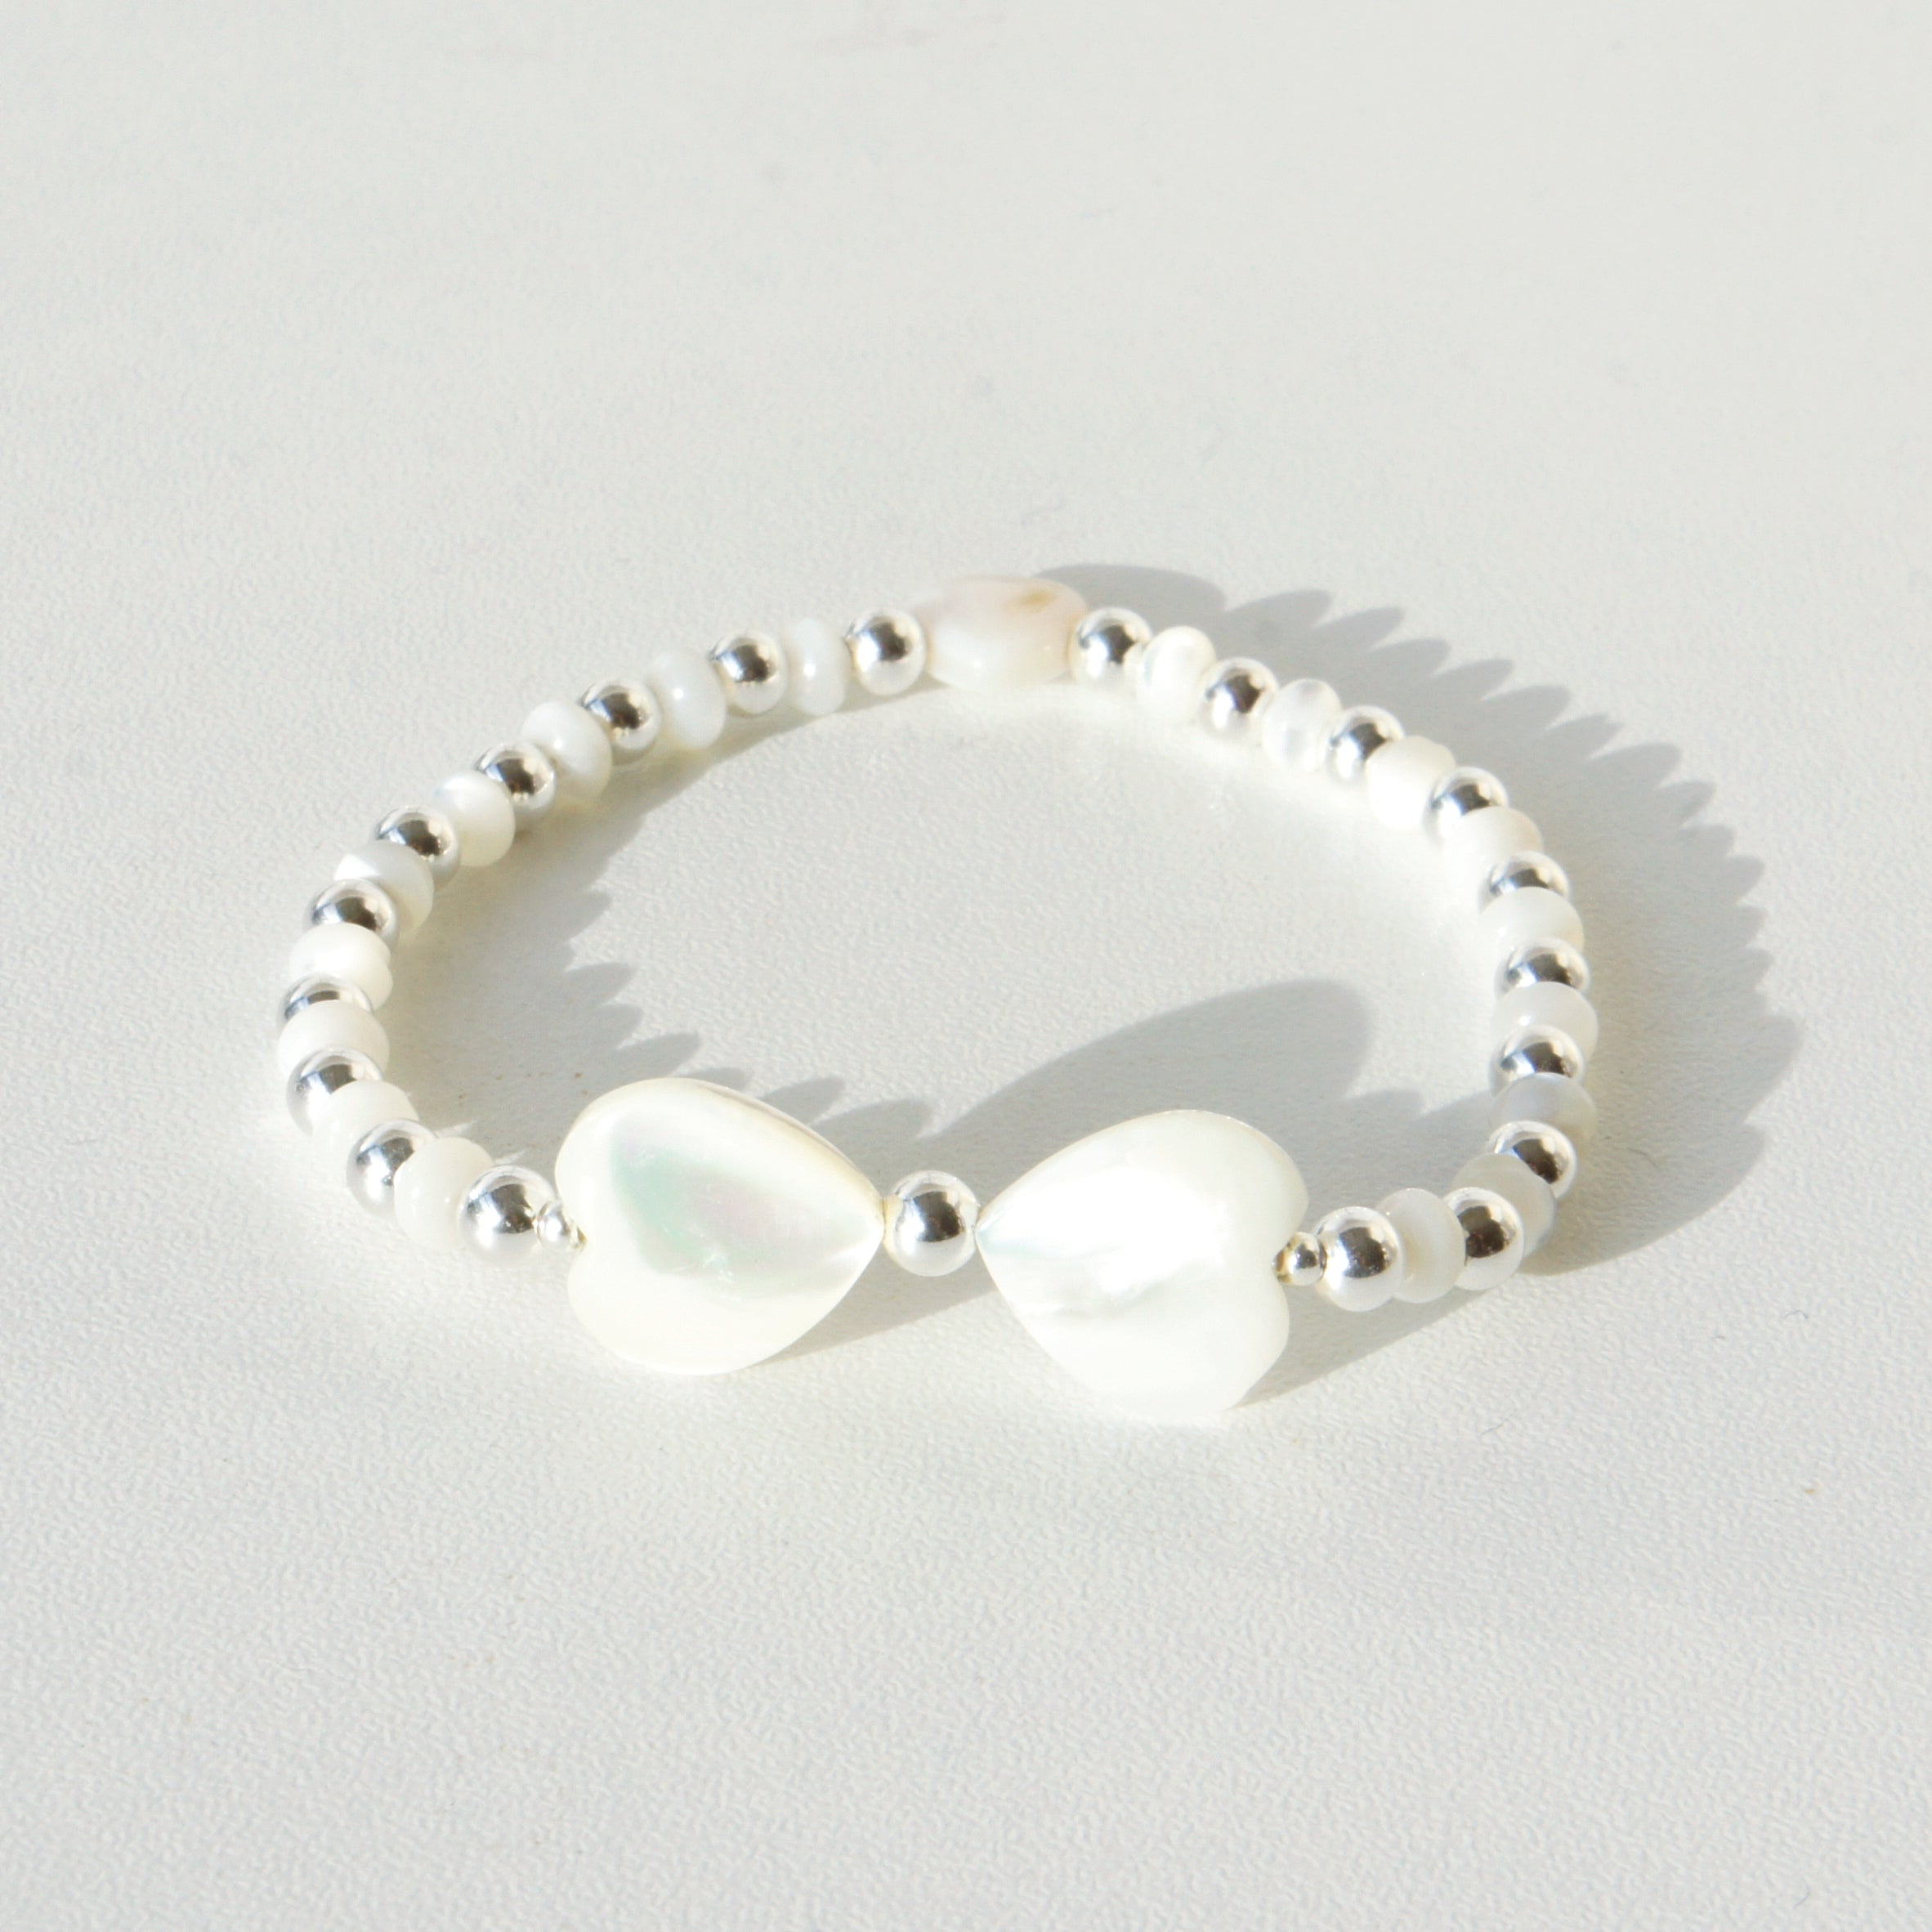 Amoretti Double Heart Bracelet, Mother of Pearl & Sterling Silver